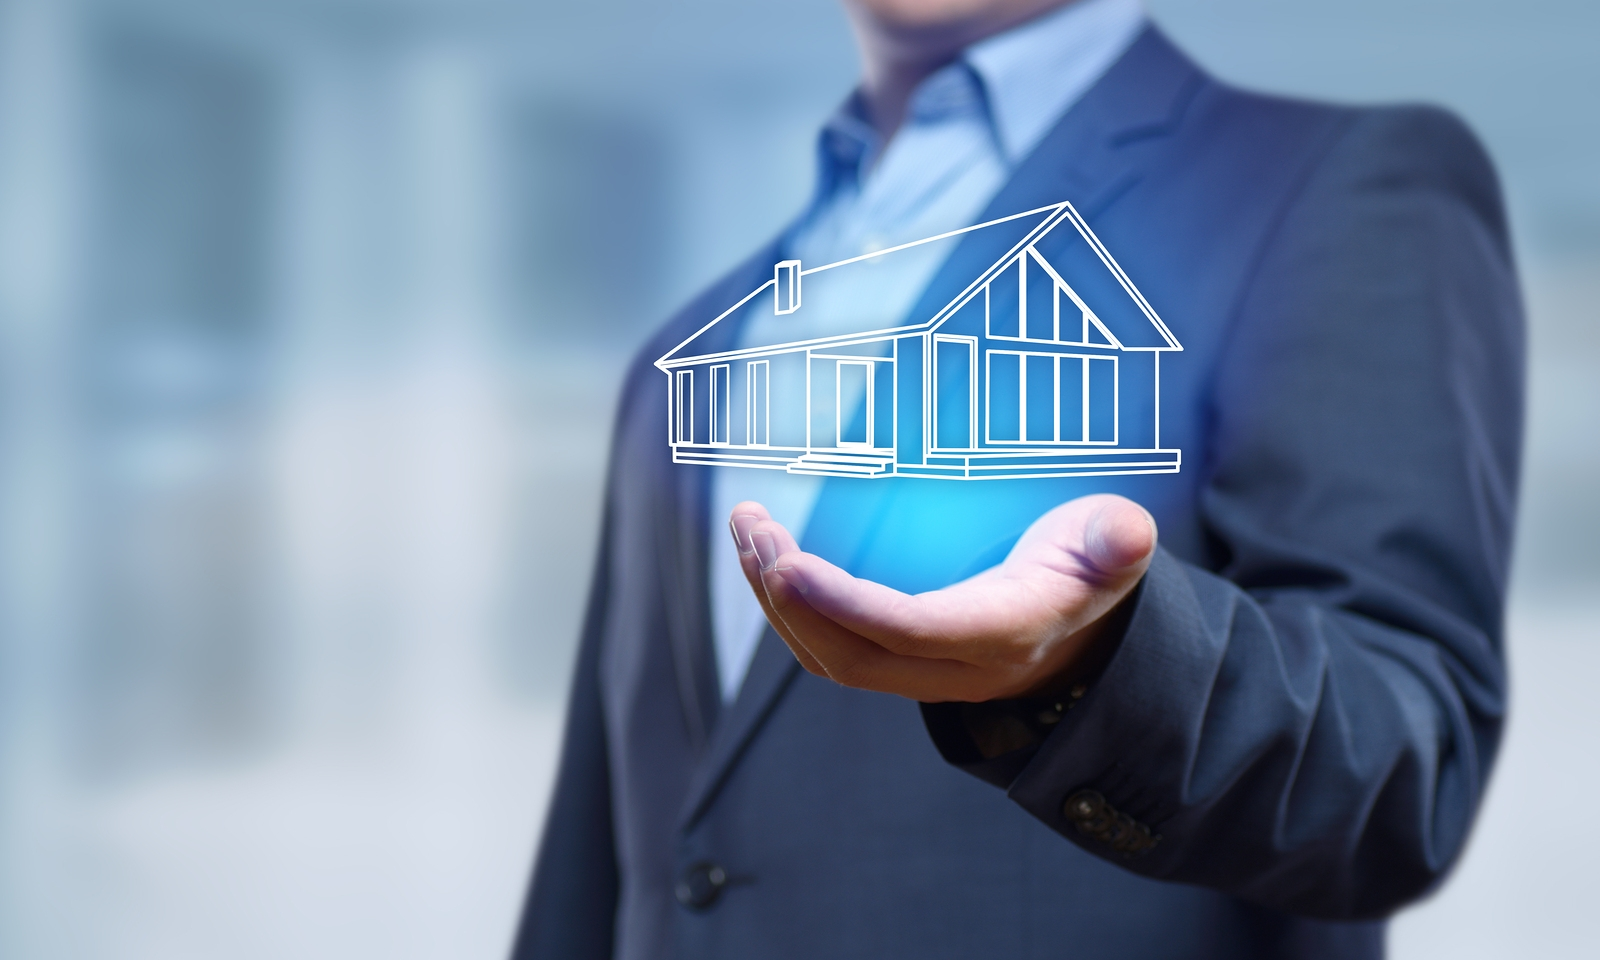 Real Estate Investing -Things to Consider When Buying a Rental Property